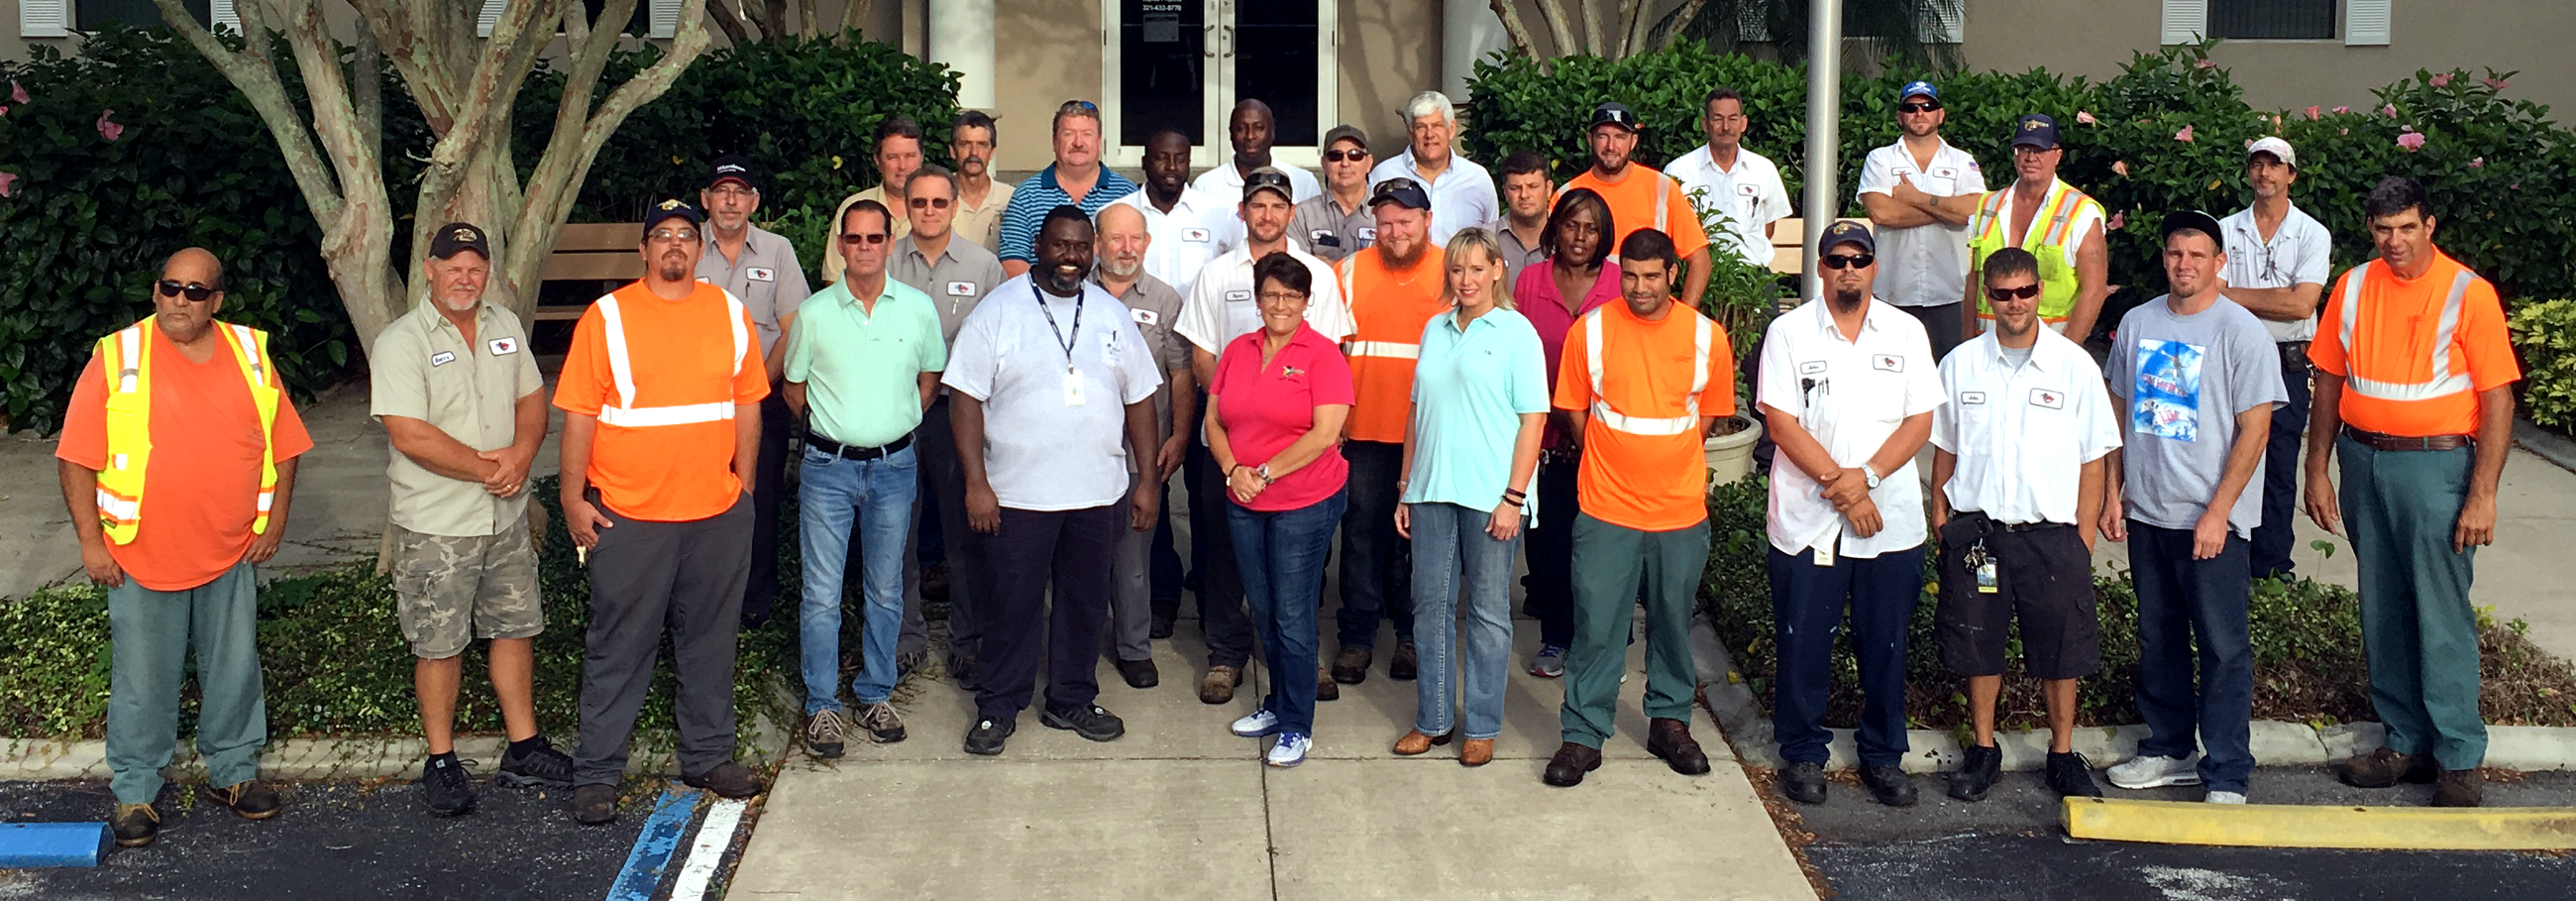 Public Works staff picture